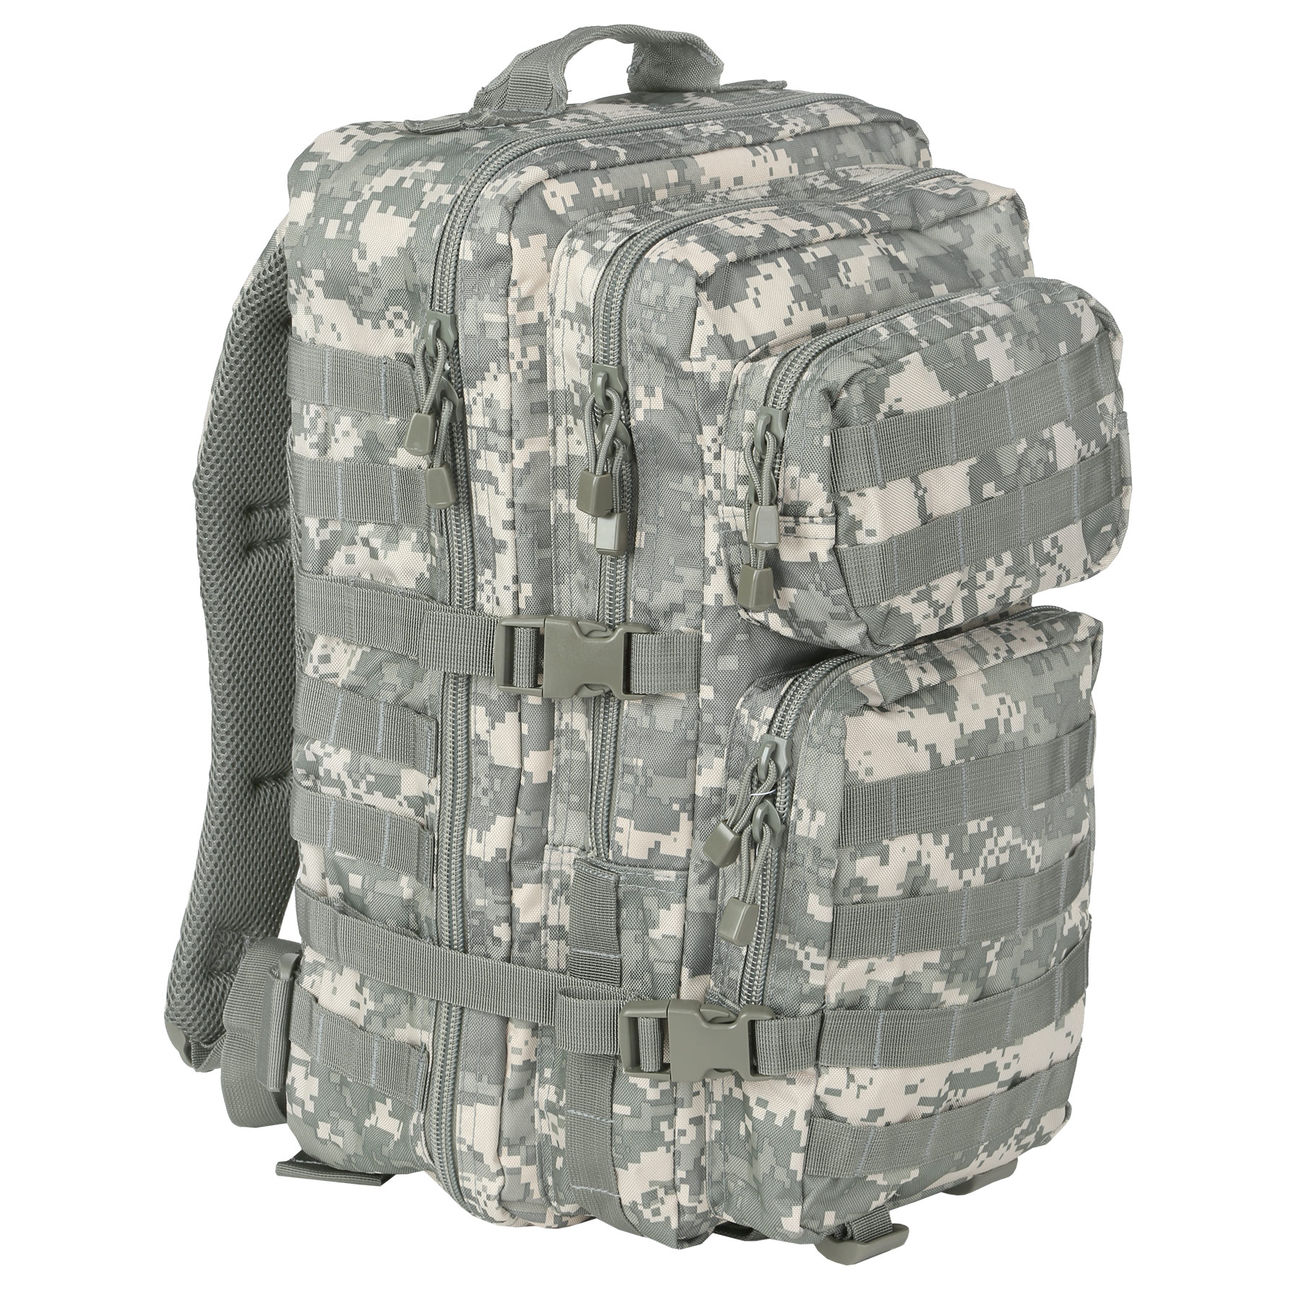 Mil-Tec Rucksack US Assault Pack II 40 Liter at-digital 0